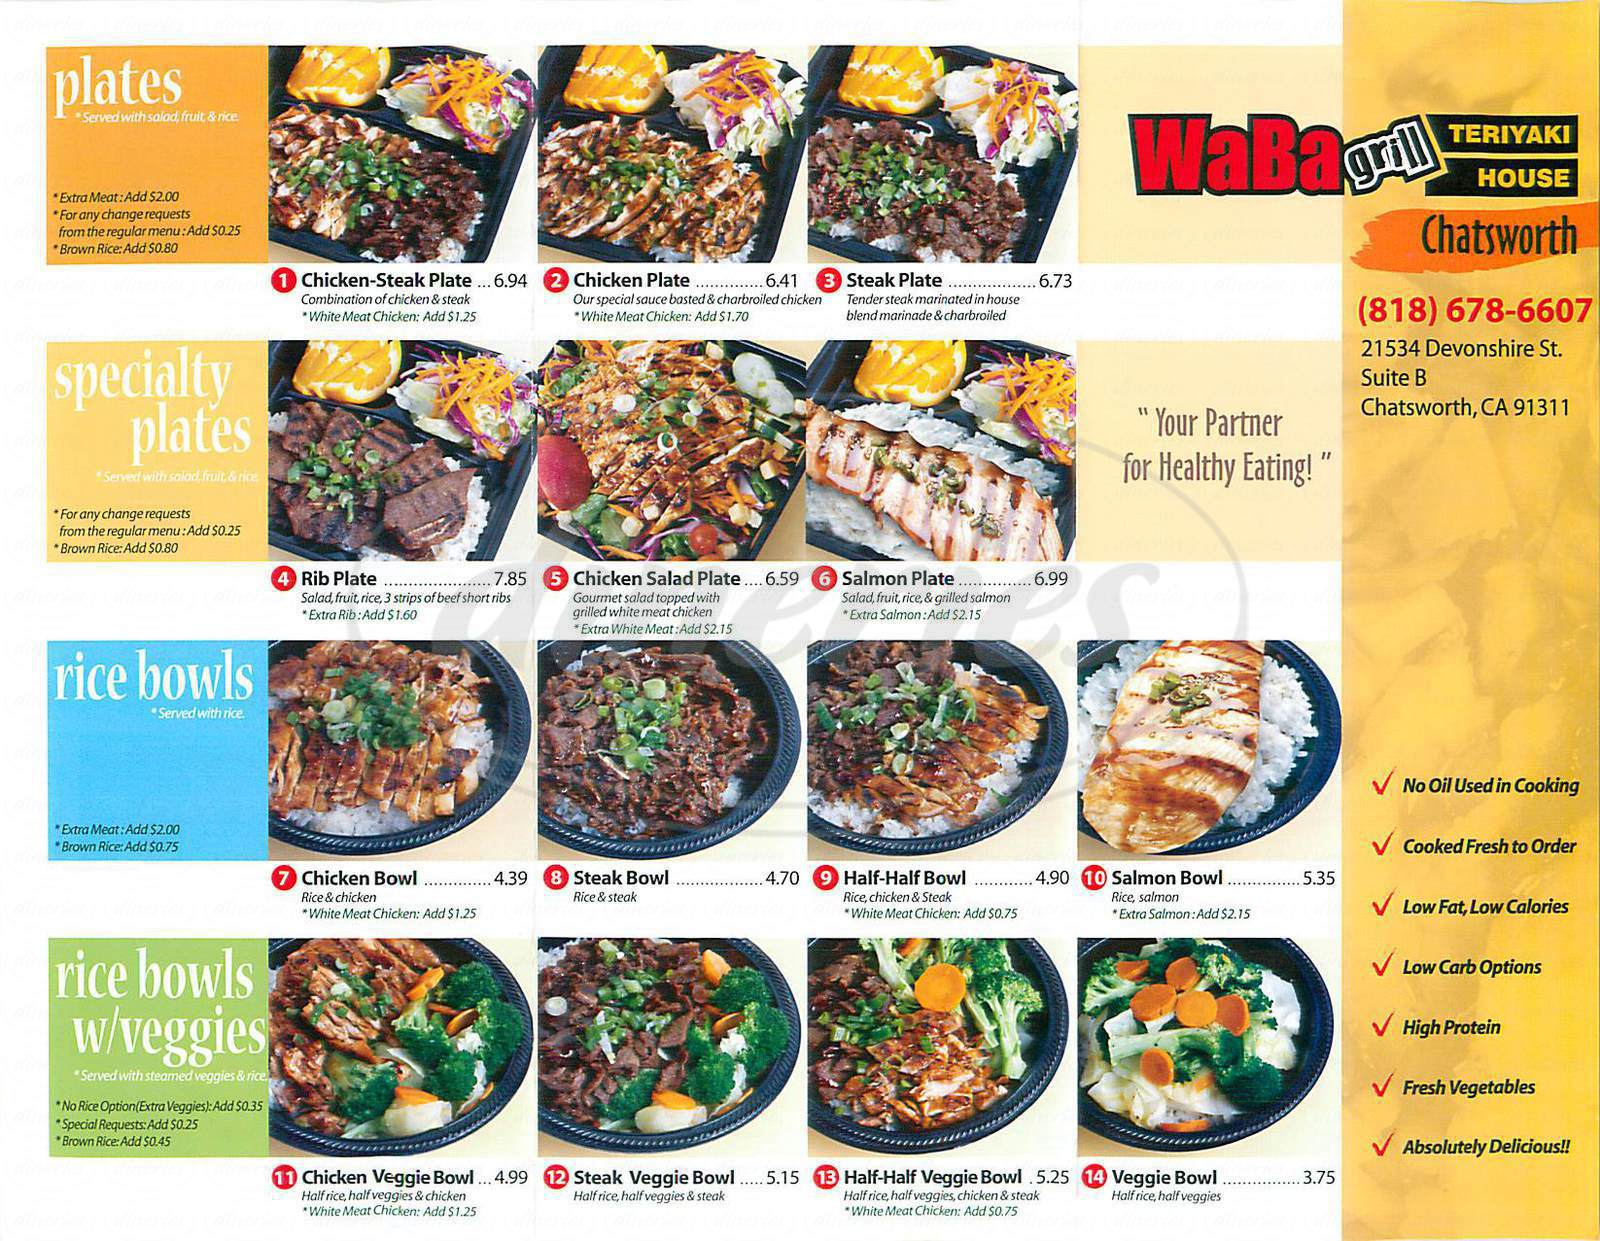 menu for Waba Grill